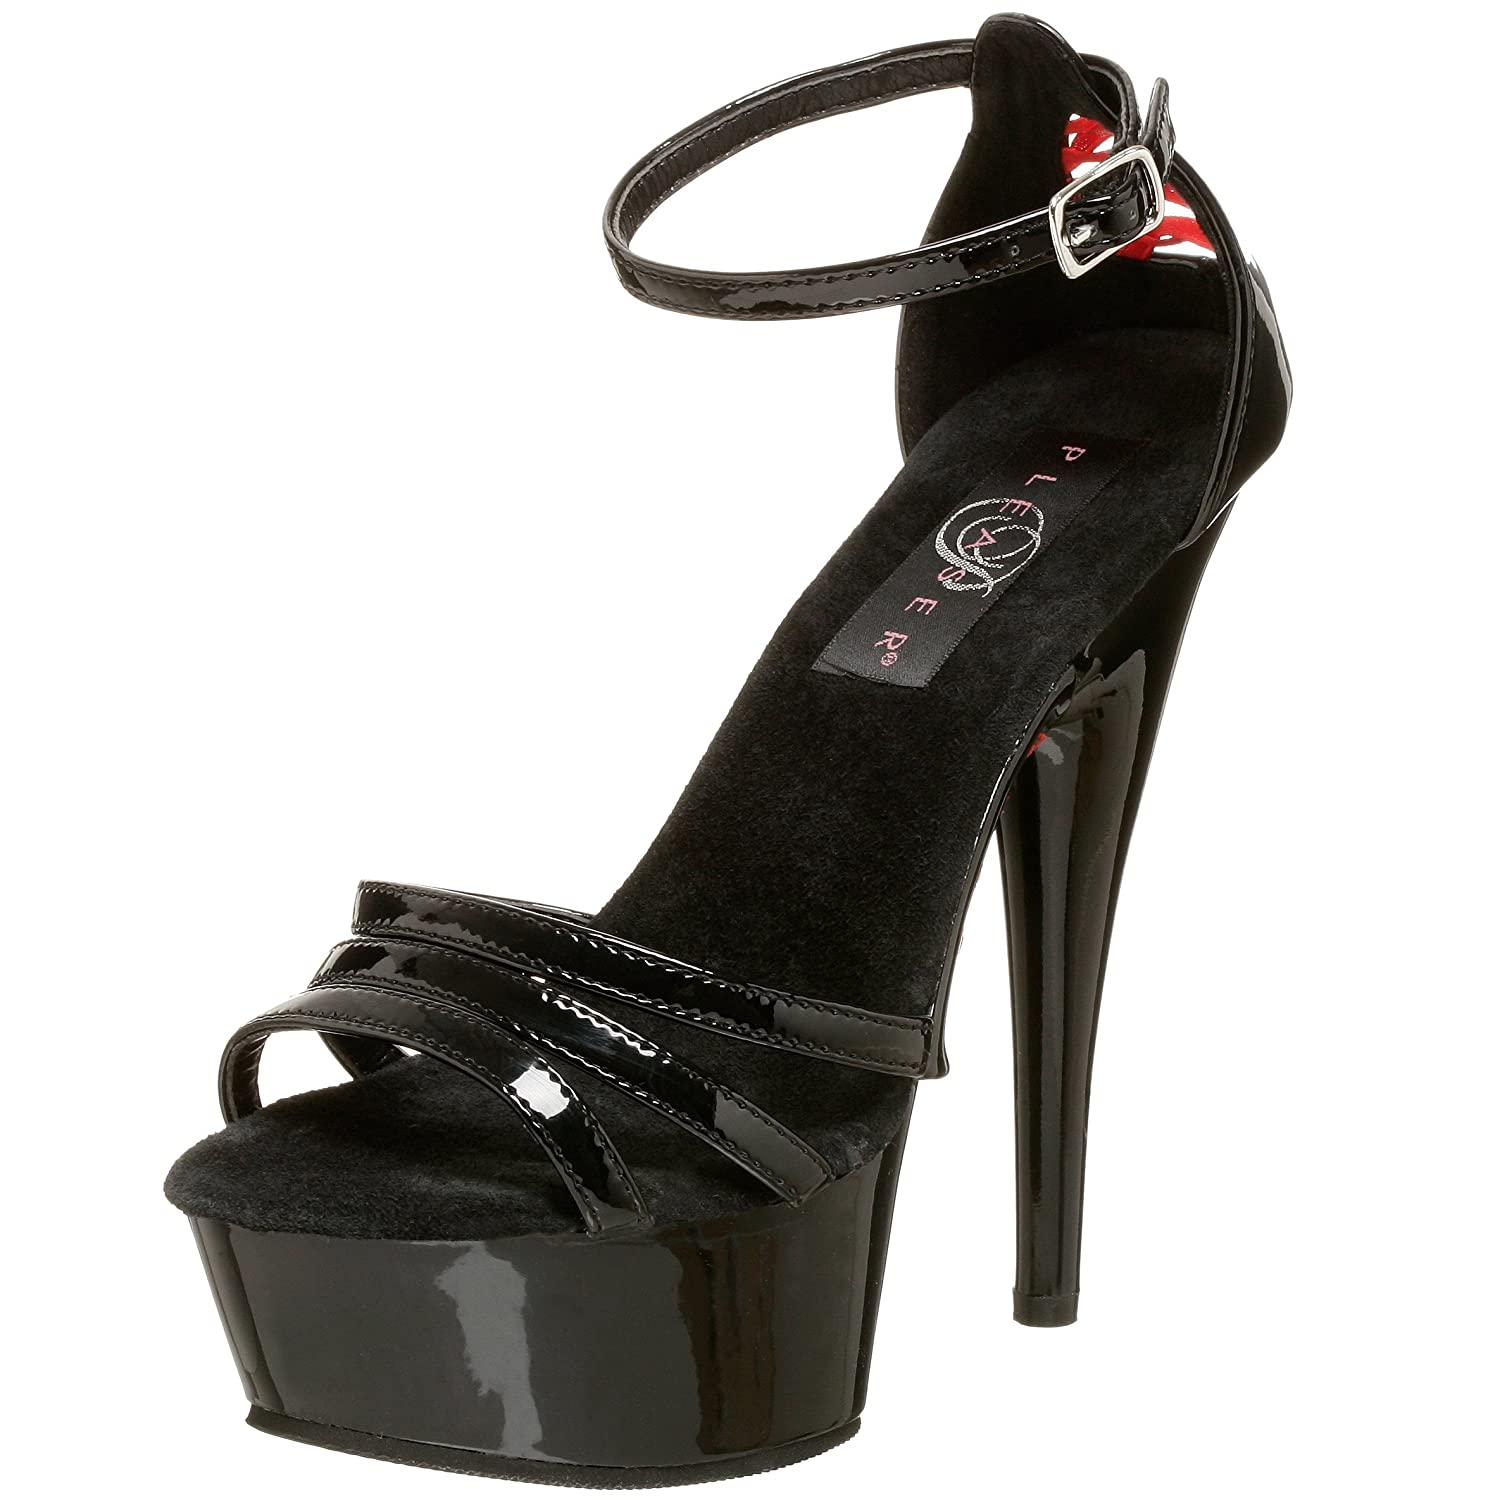 Pleaser Women's Delight-662 Ankle-Strap Sandal B0019Z1UVI 10 B(M) US|Black/Black